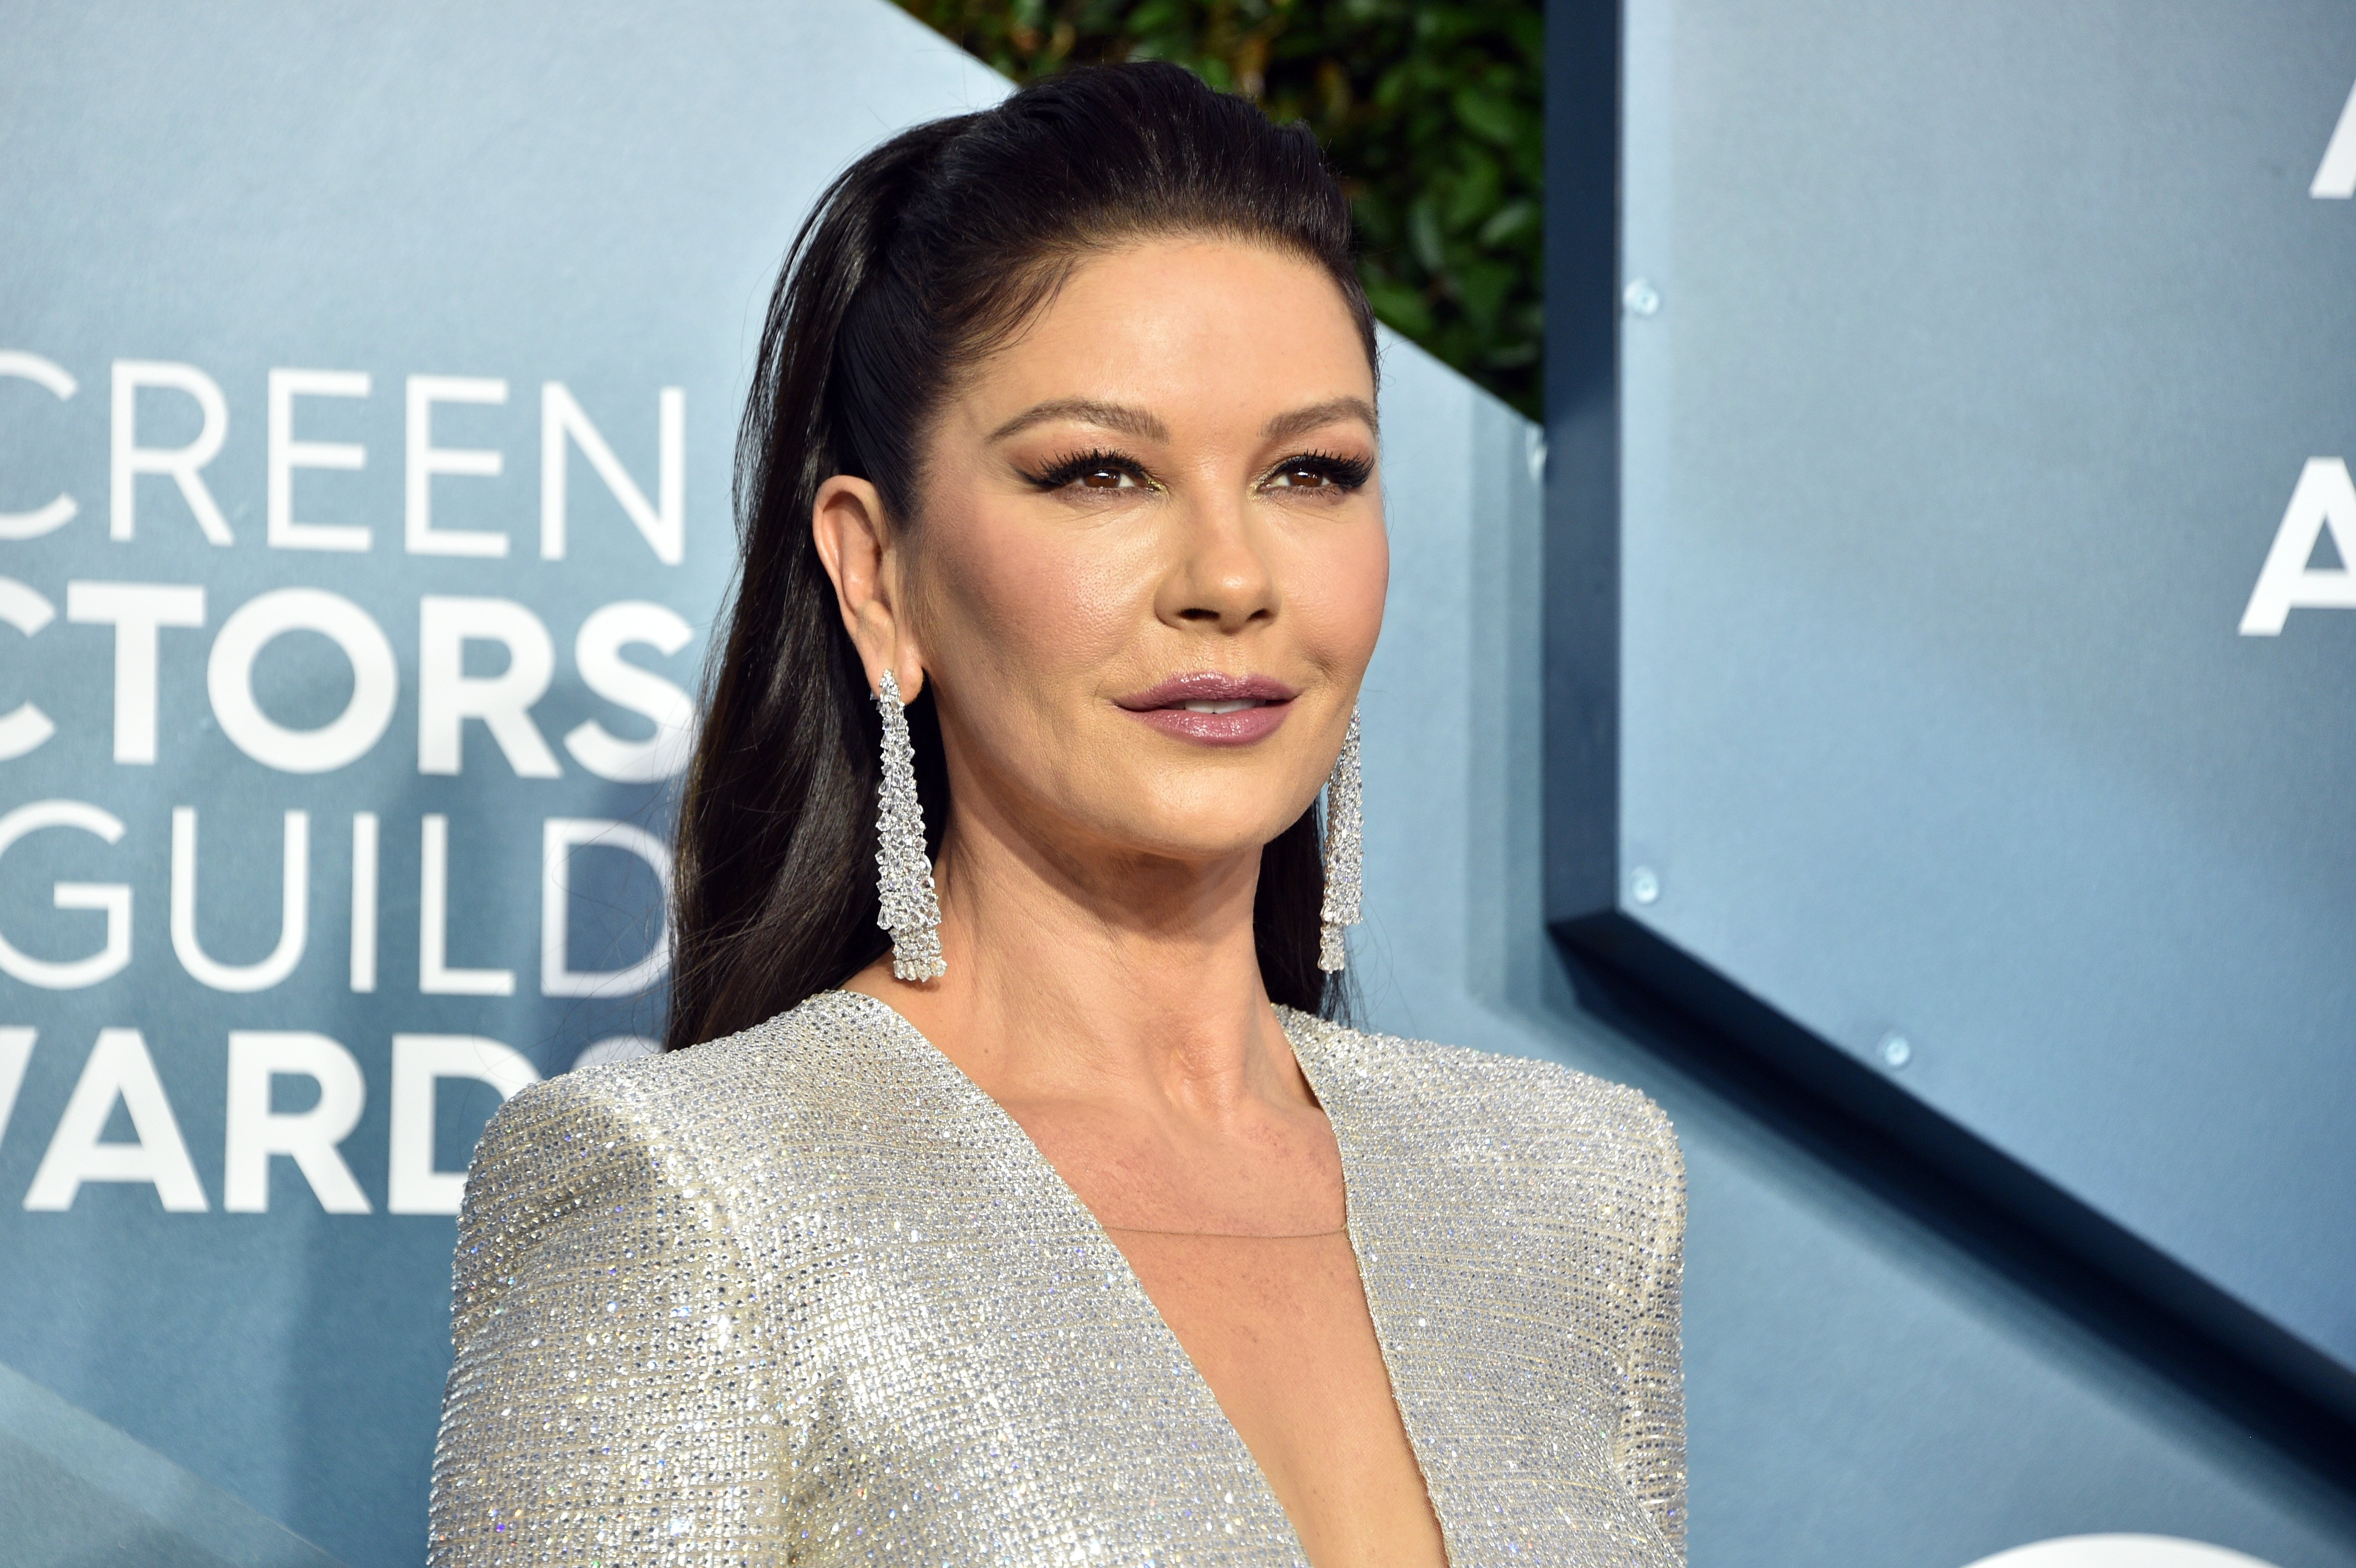 Catherine Zeta-Jones attends the 26th Annual Screen Actors Guild Awards at The Shrine Auditorium on January 19, 2020 in Los Angeles, California | Photo: Getty Images